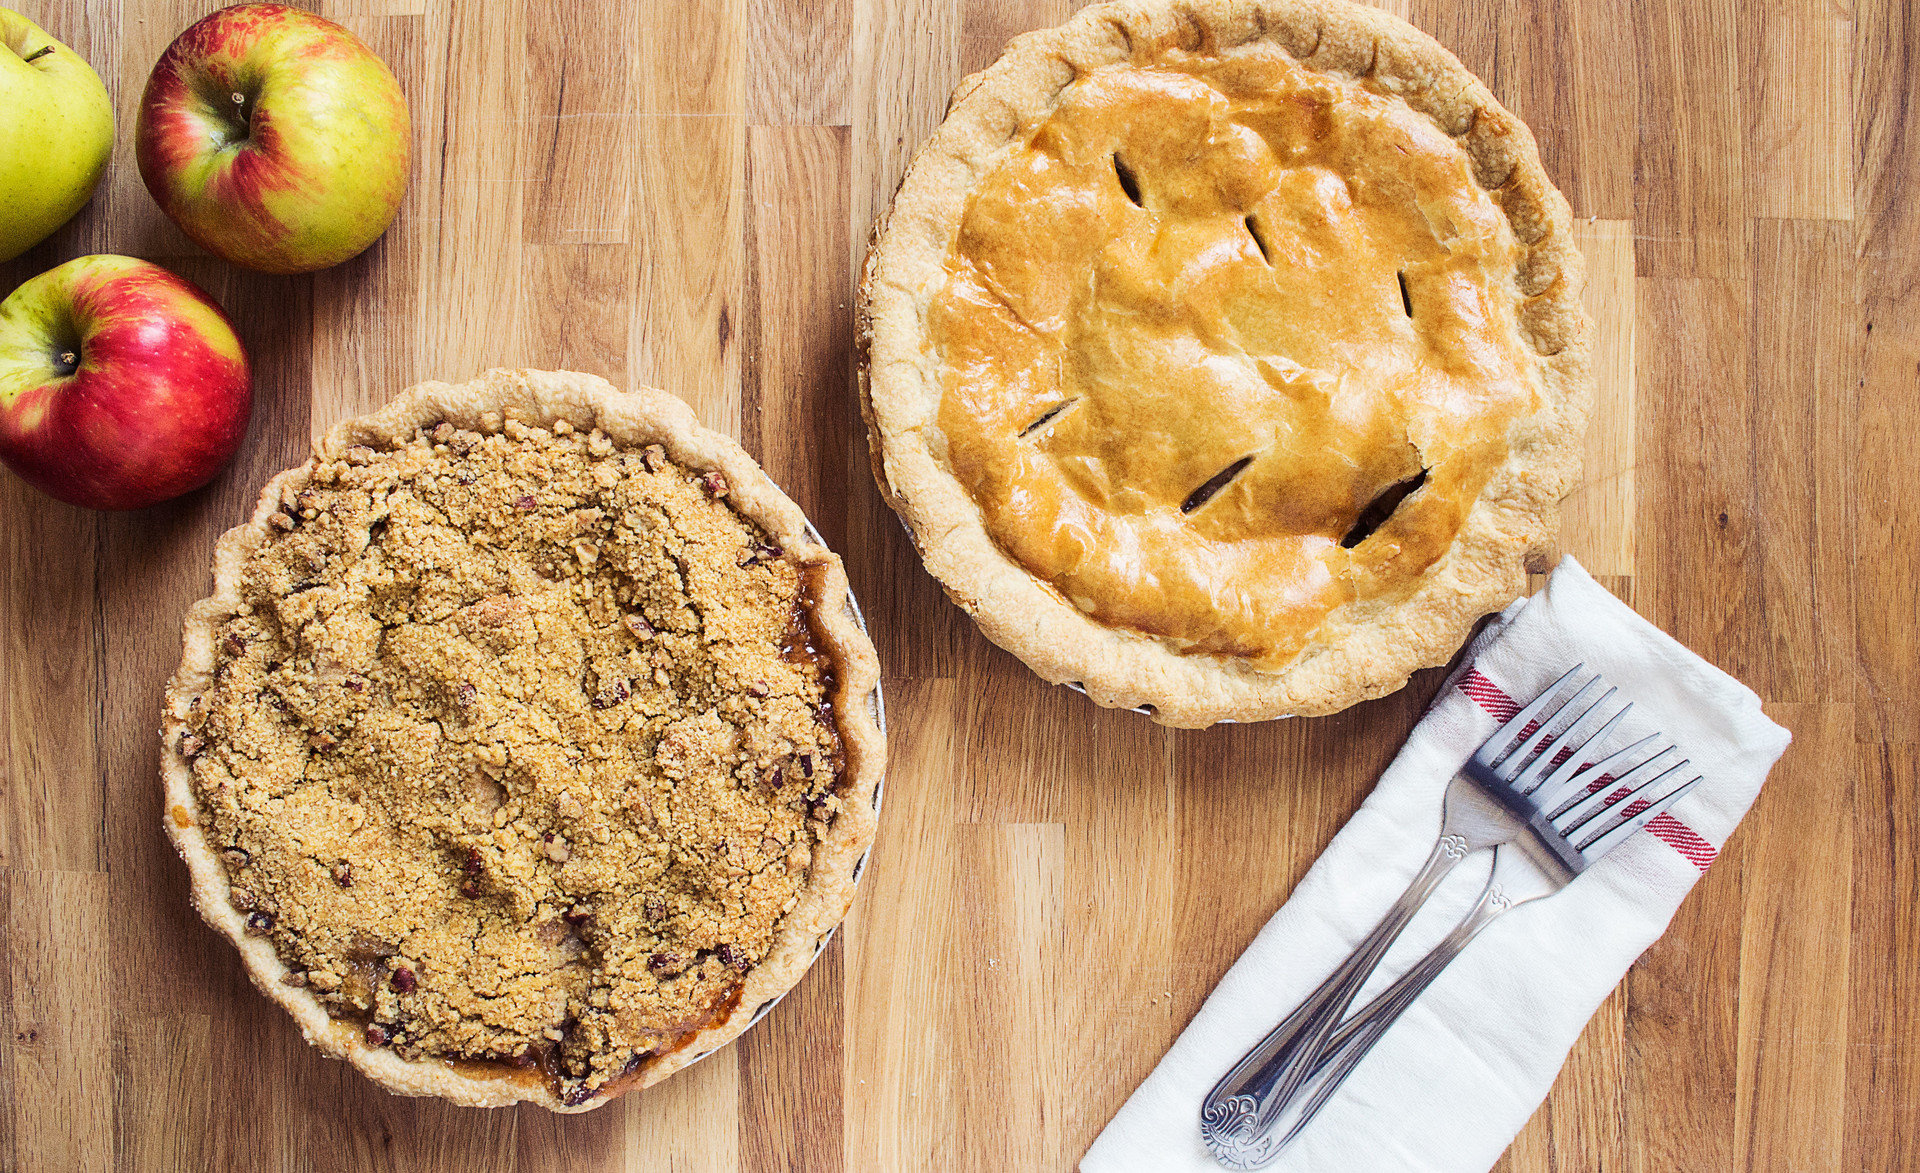 dessert Eat food Food + Drink Offbeat pie sweets wooden table apple dish plant fruit baked goods produce land plant flowering plant breakfast baking meal flavor rose family coconut wood